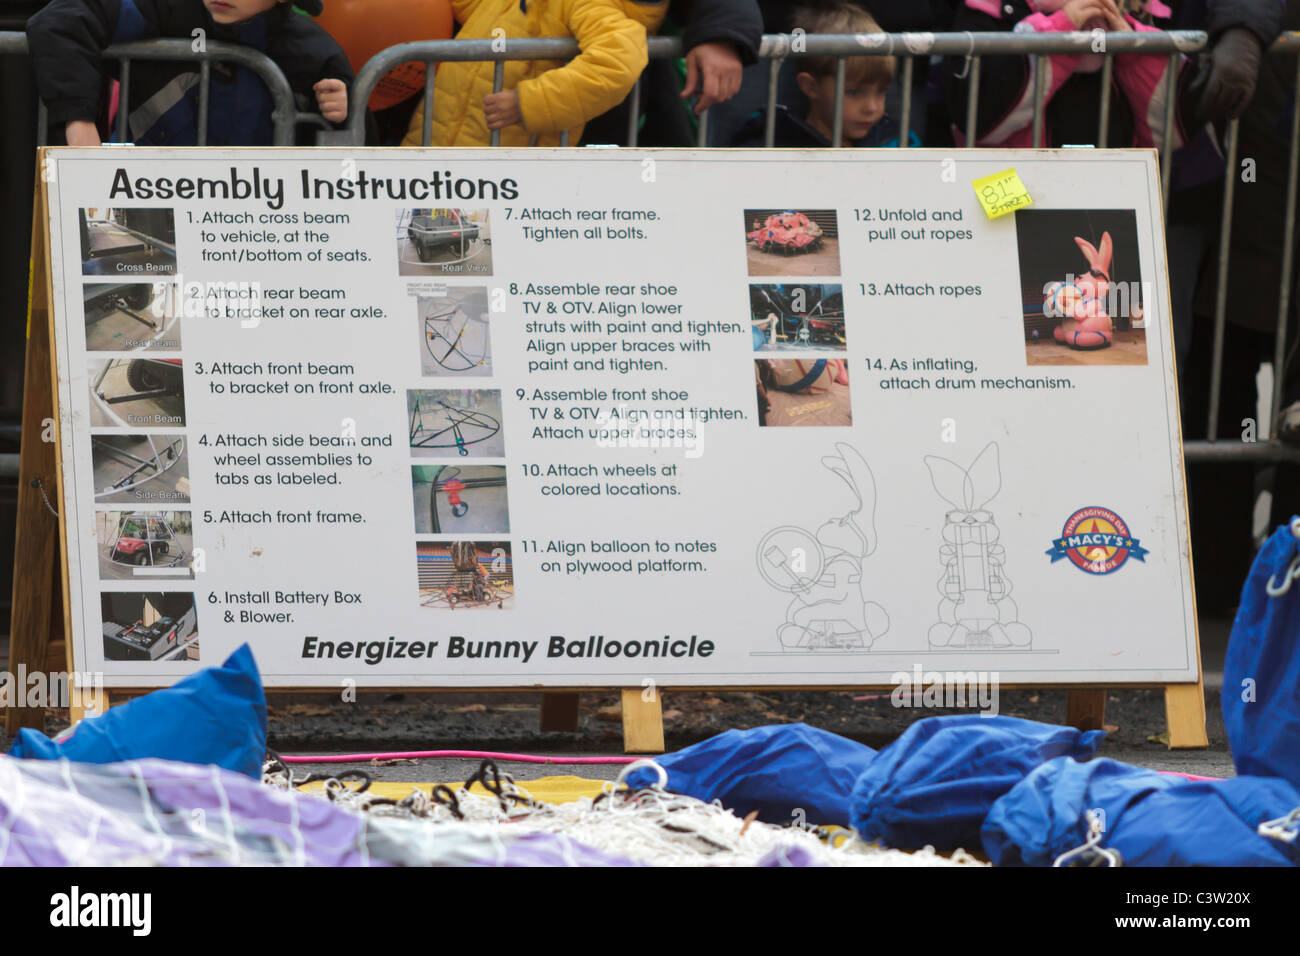 Detailed assembly instructions for the Energizer Bunny balloon for the 2010 Macy's Thanksgiving Day parade - Stock Image